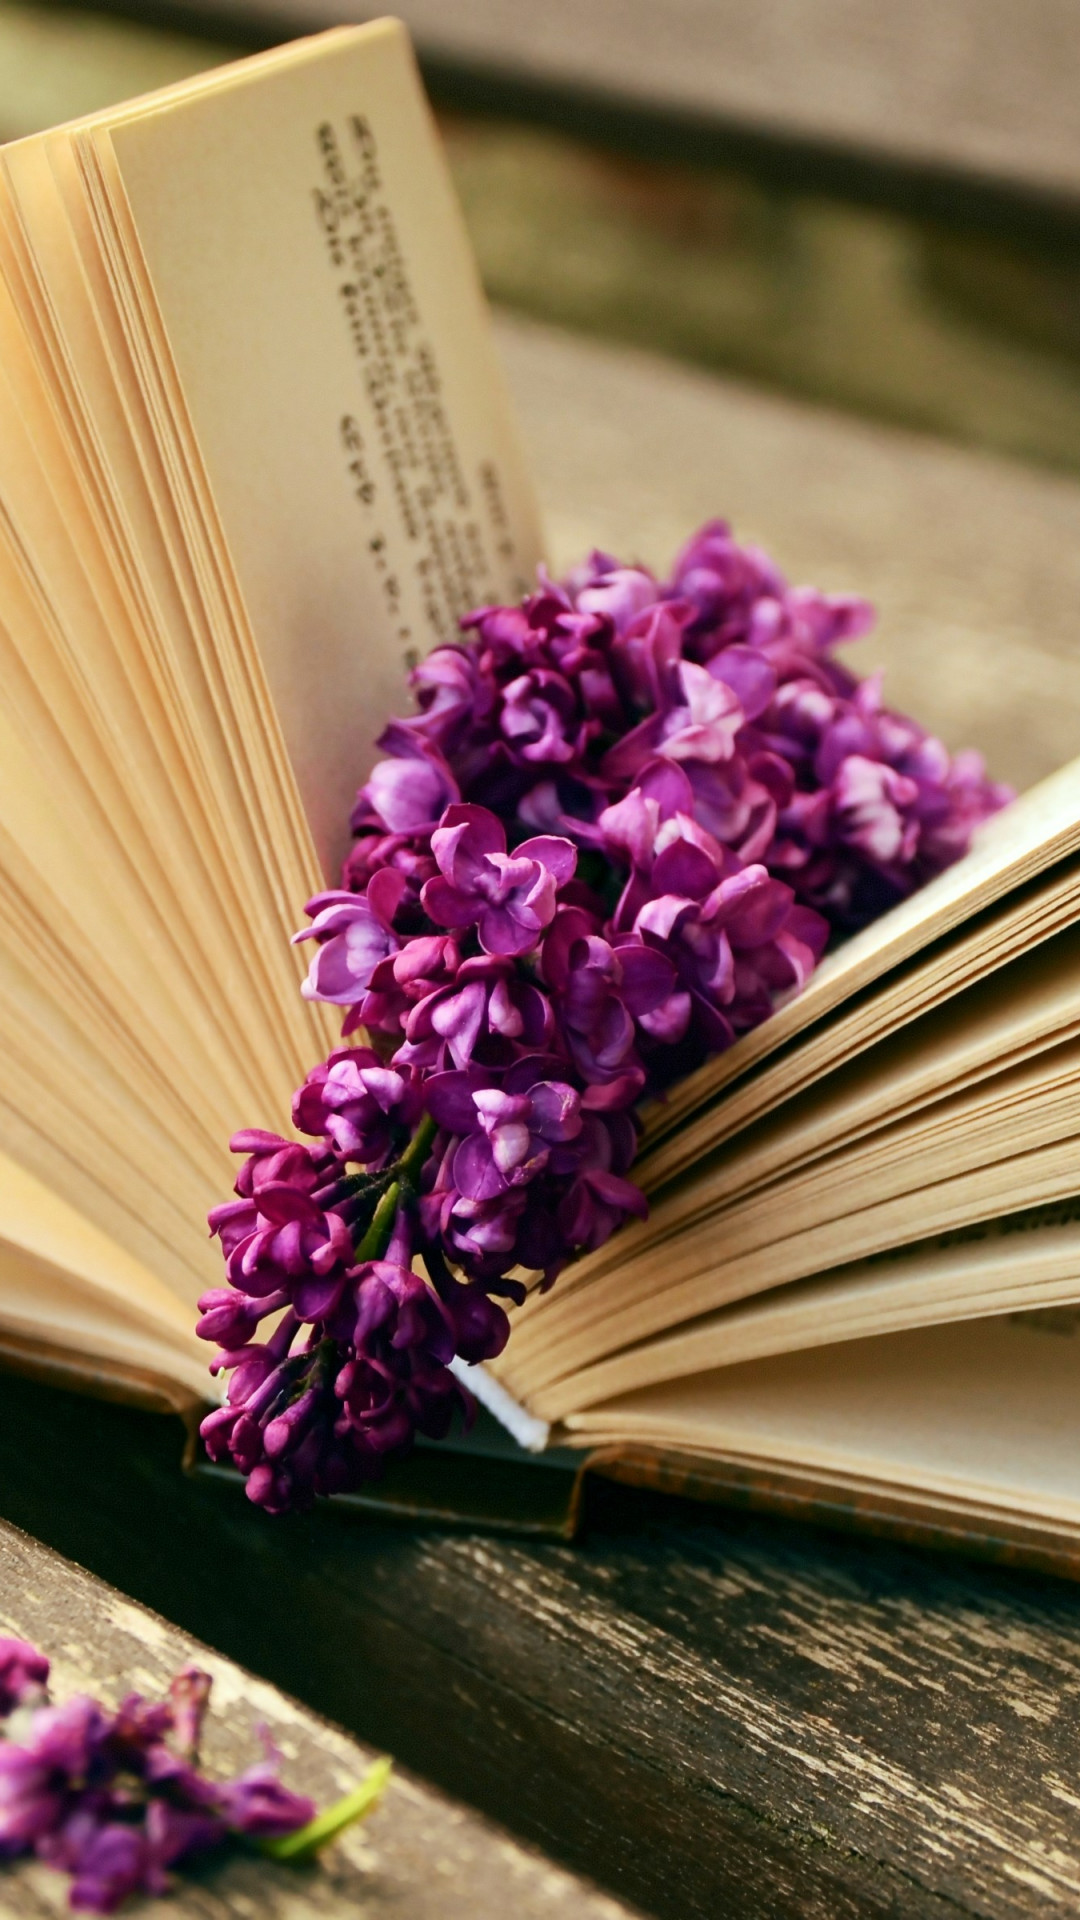 Lilac flowers and a good book wallpaper 1080x1920